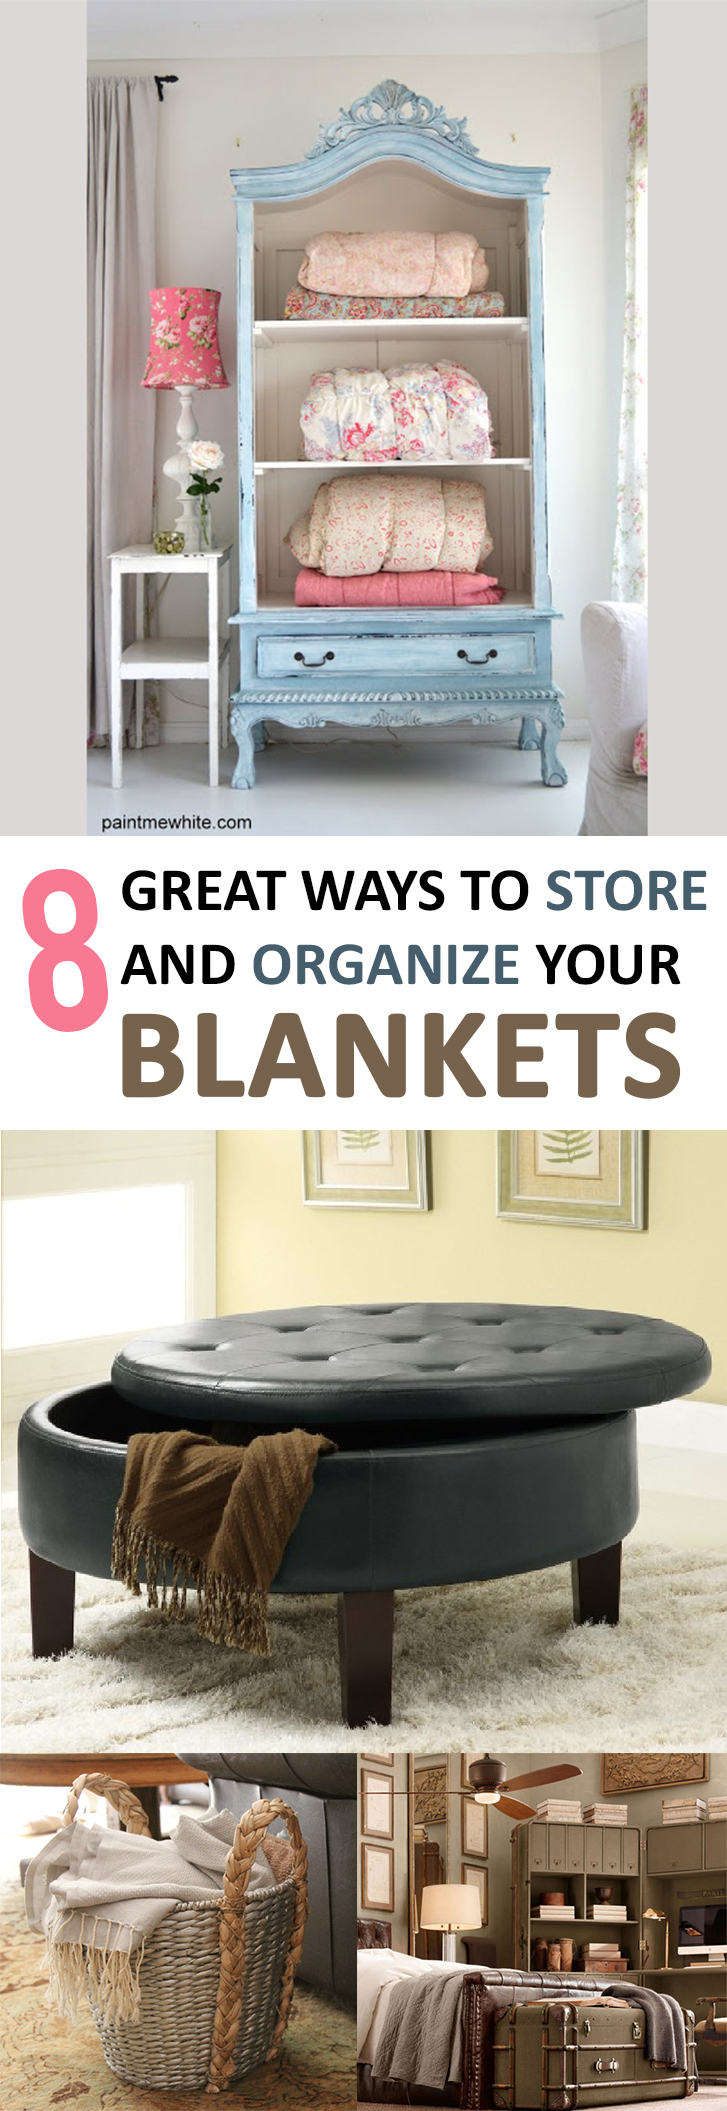 8 Great Ways To Store And Organize Your Blankets Page 5